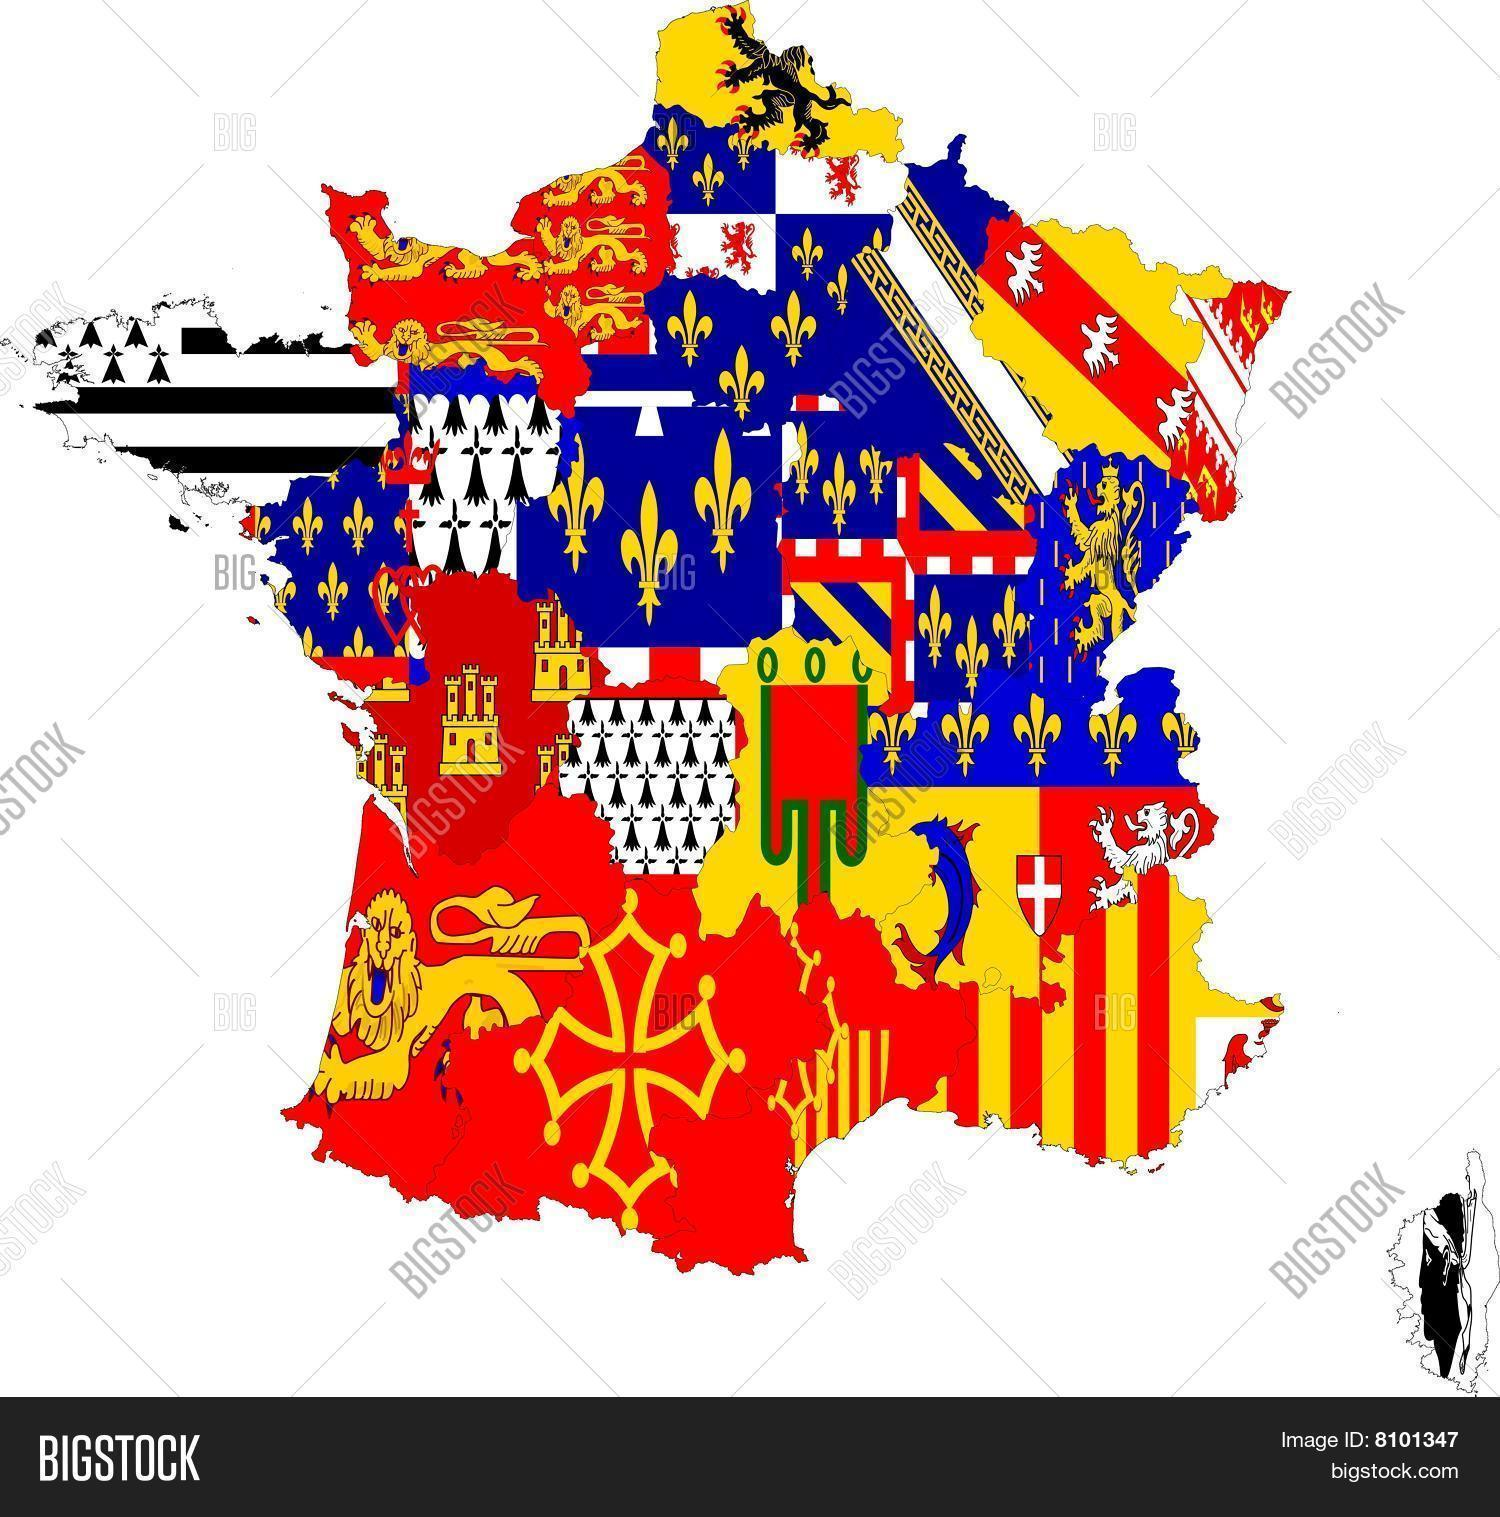 France Map With Regions.France Map Regions Image Photo Free Trial Bigstock